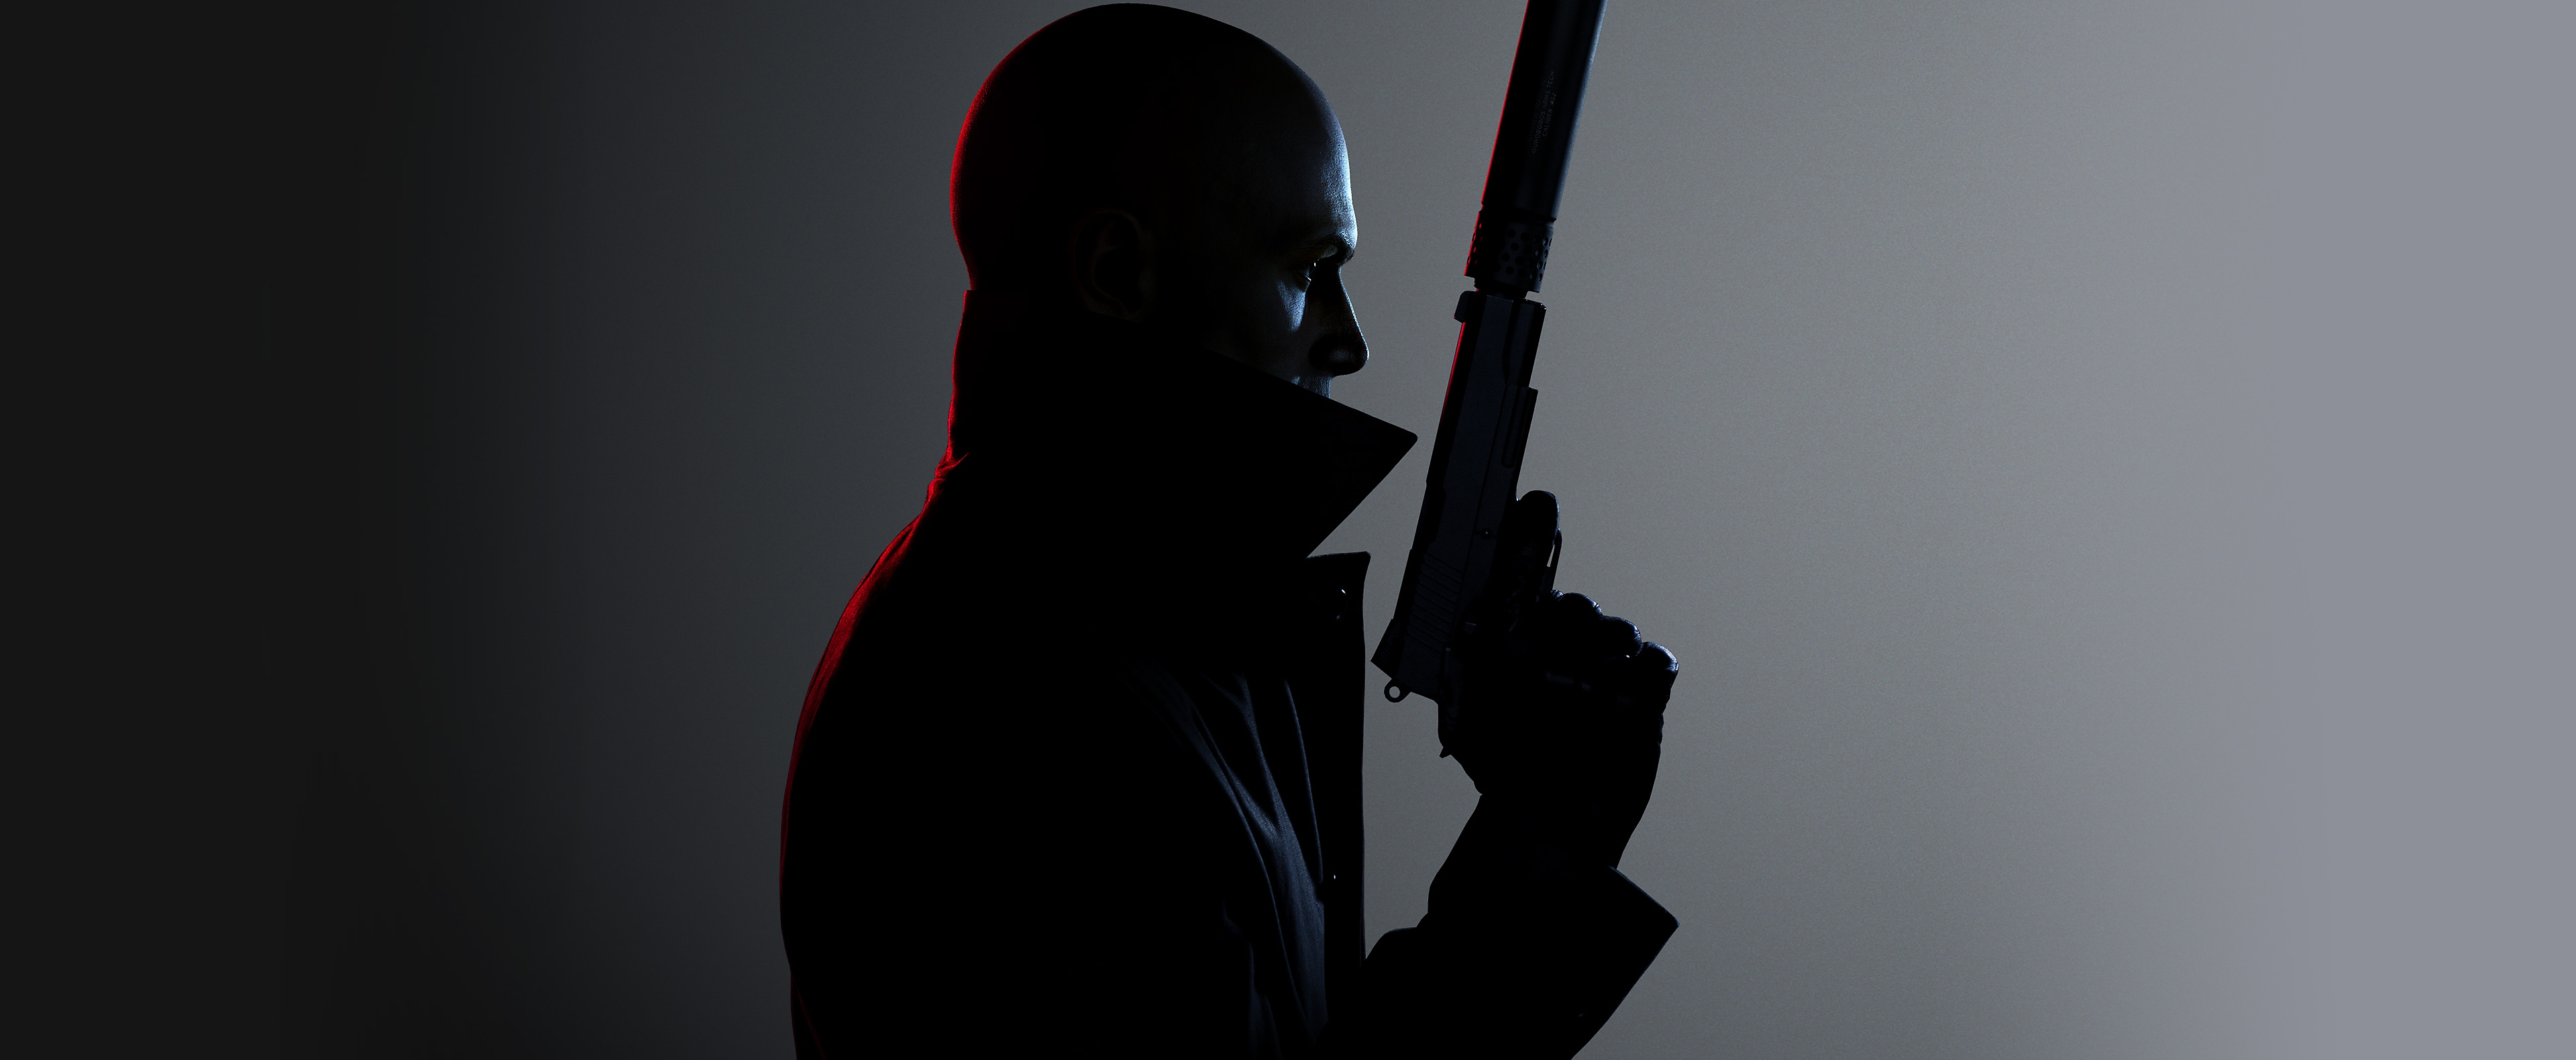 Hitman 3 gameplay key art